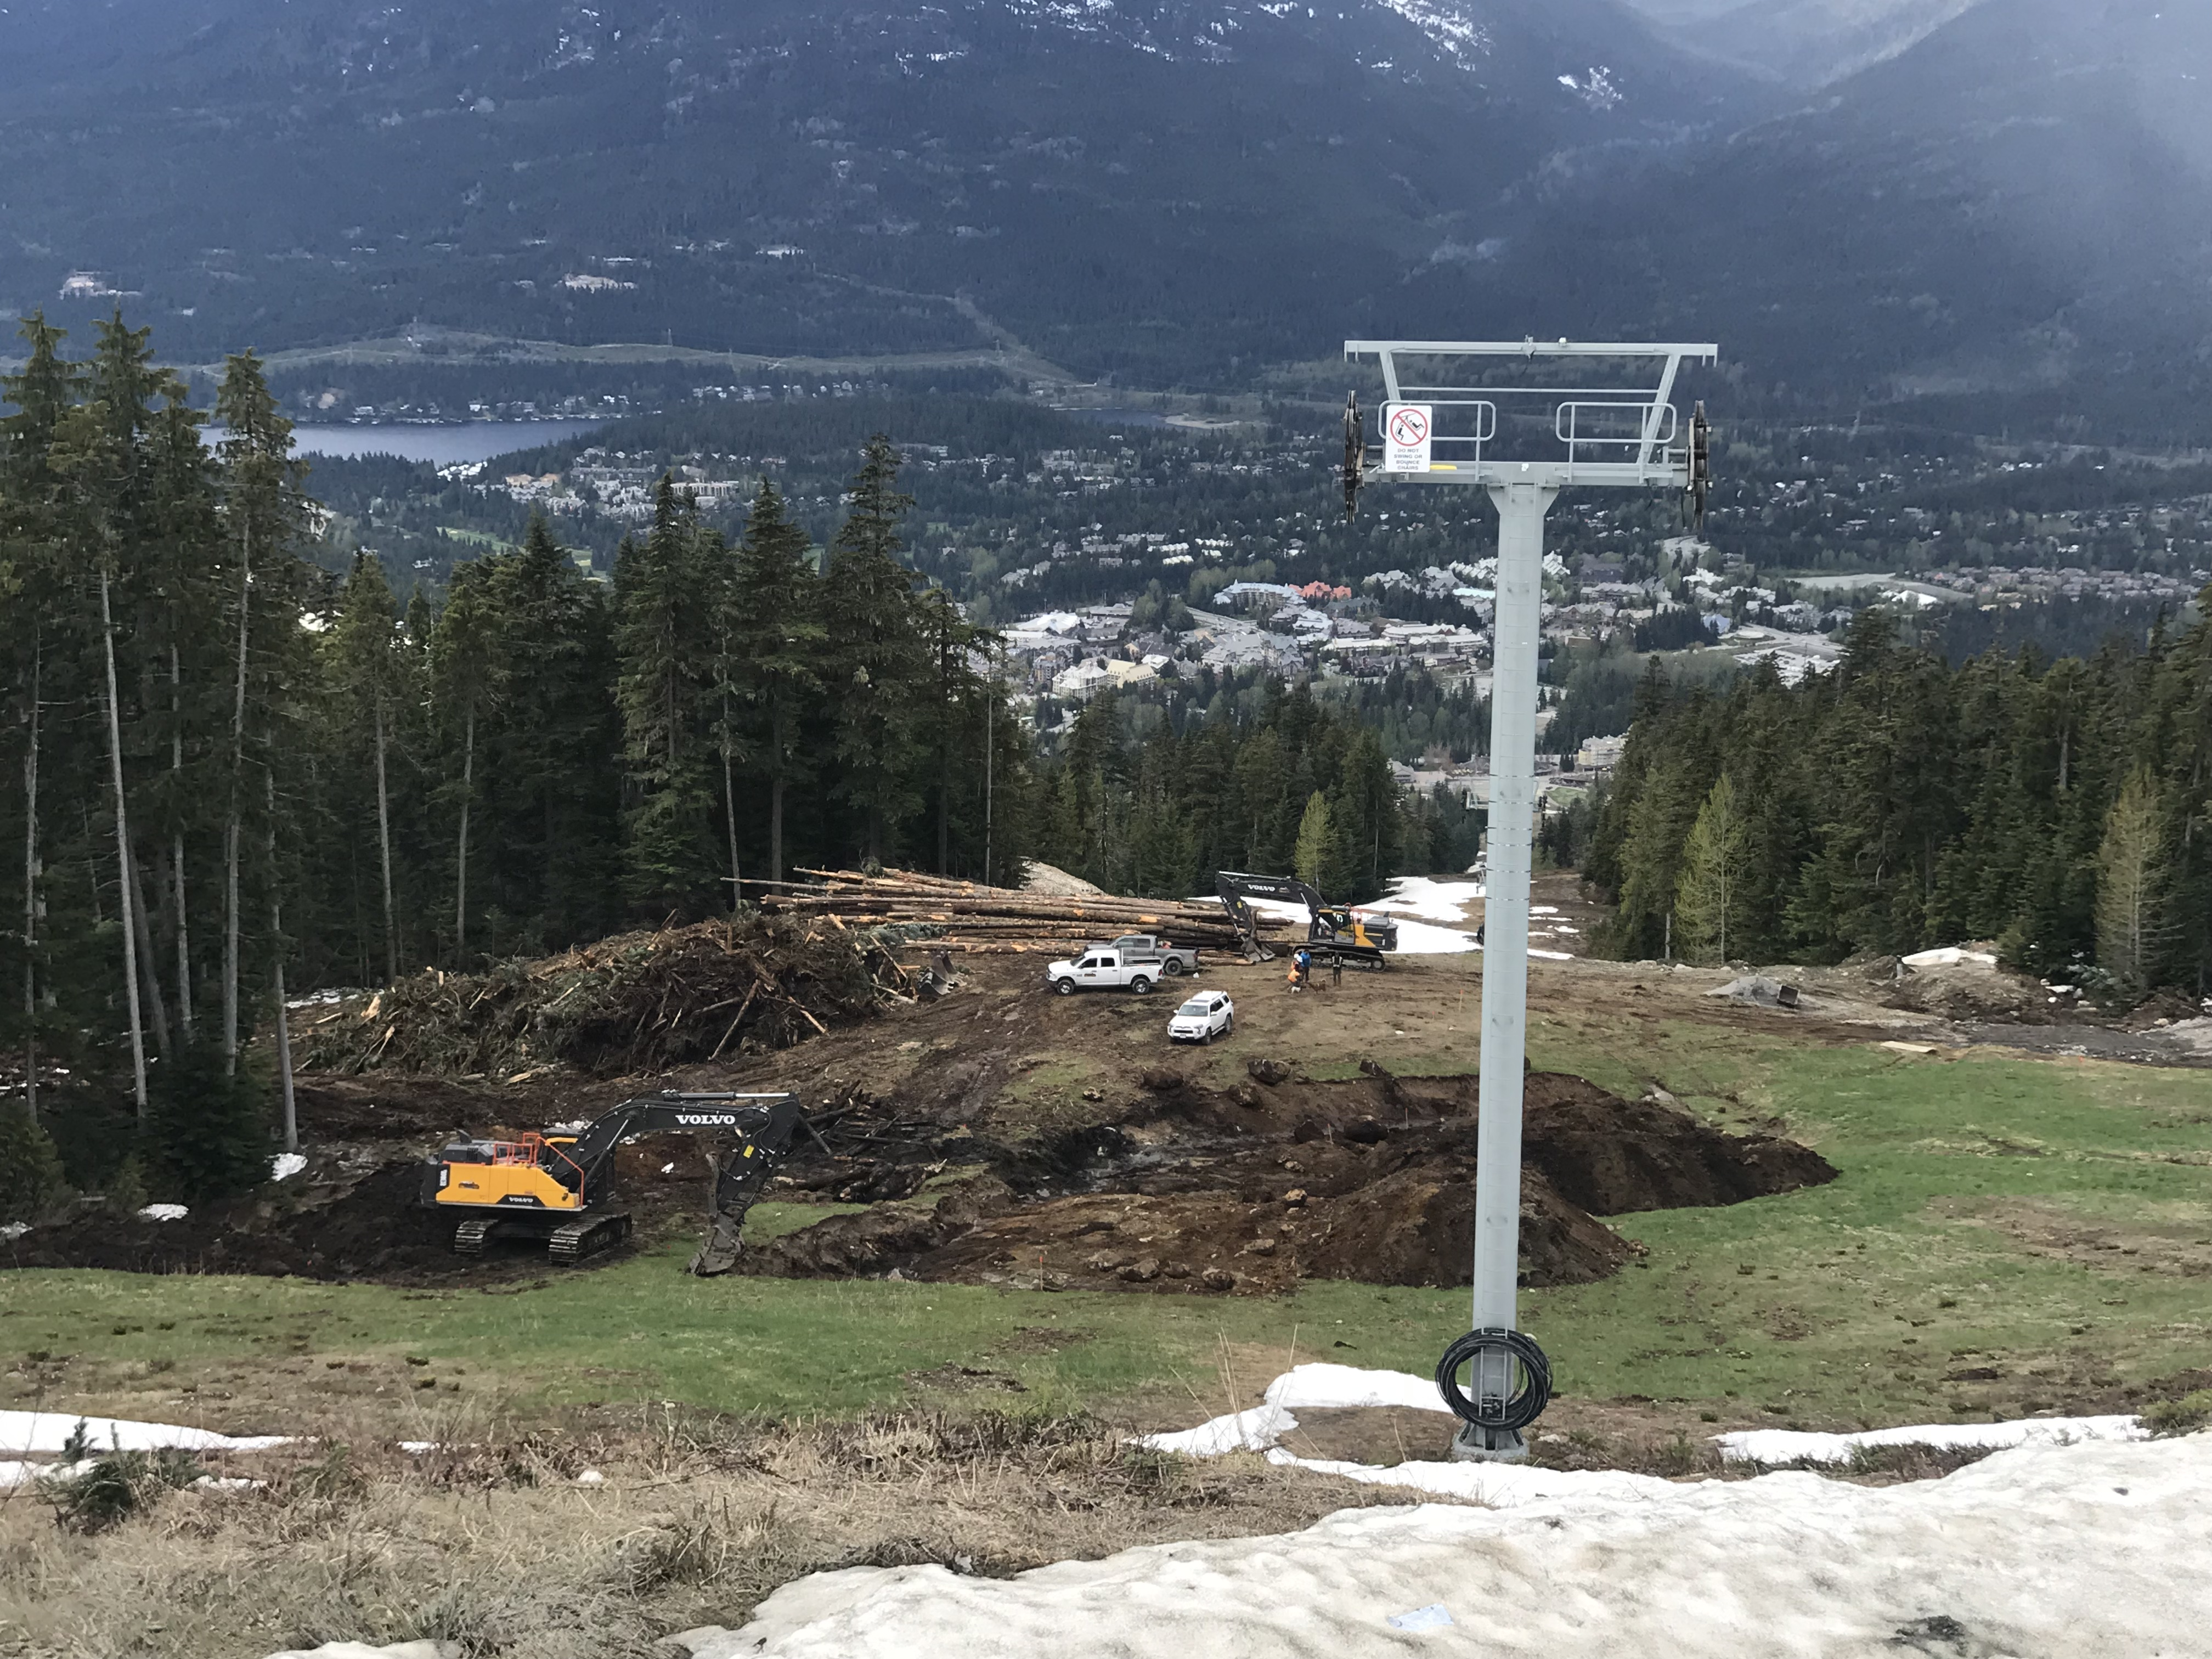 ground being cleared on ski slope with views of Whistler Village